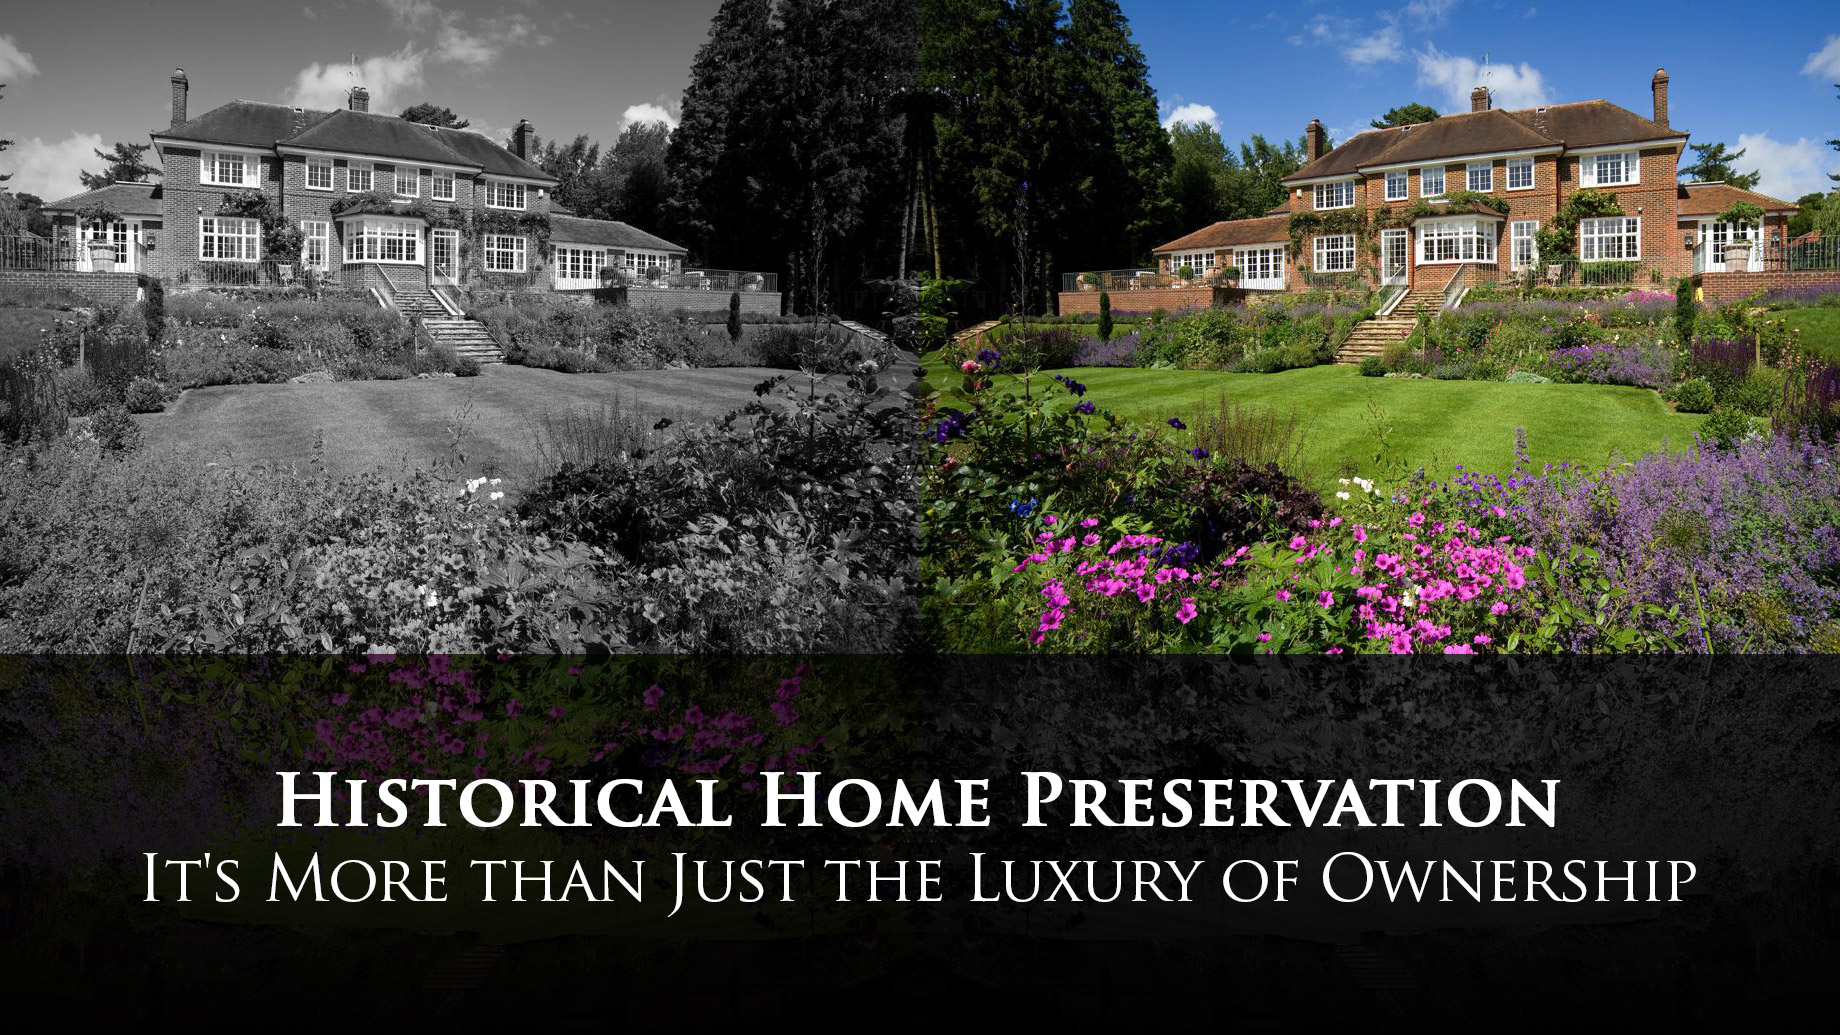 Historical Home Preservation - It's More than Just the Luxury of Ownership